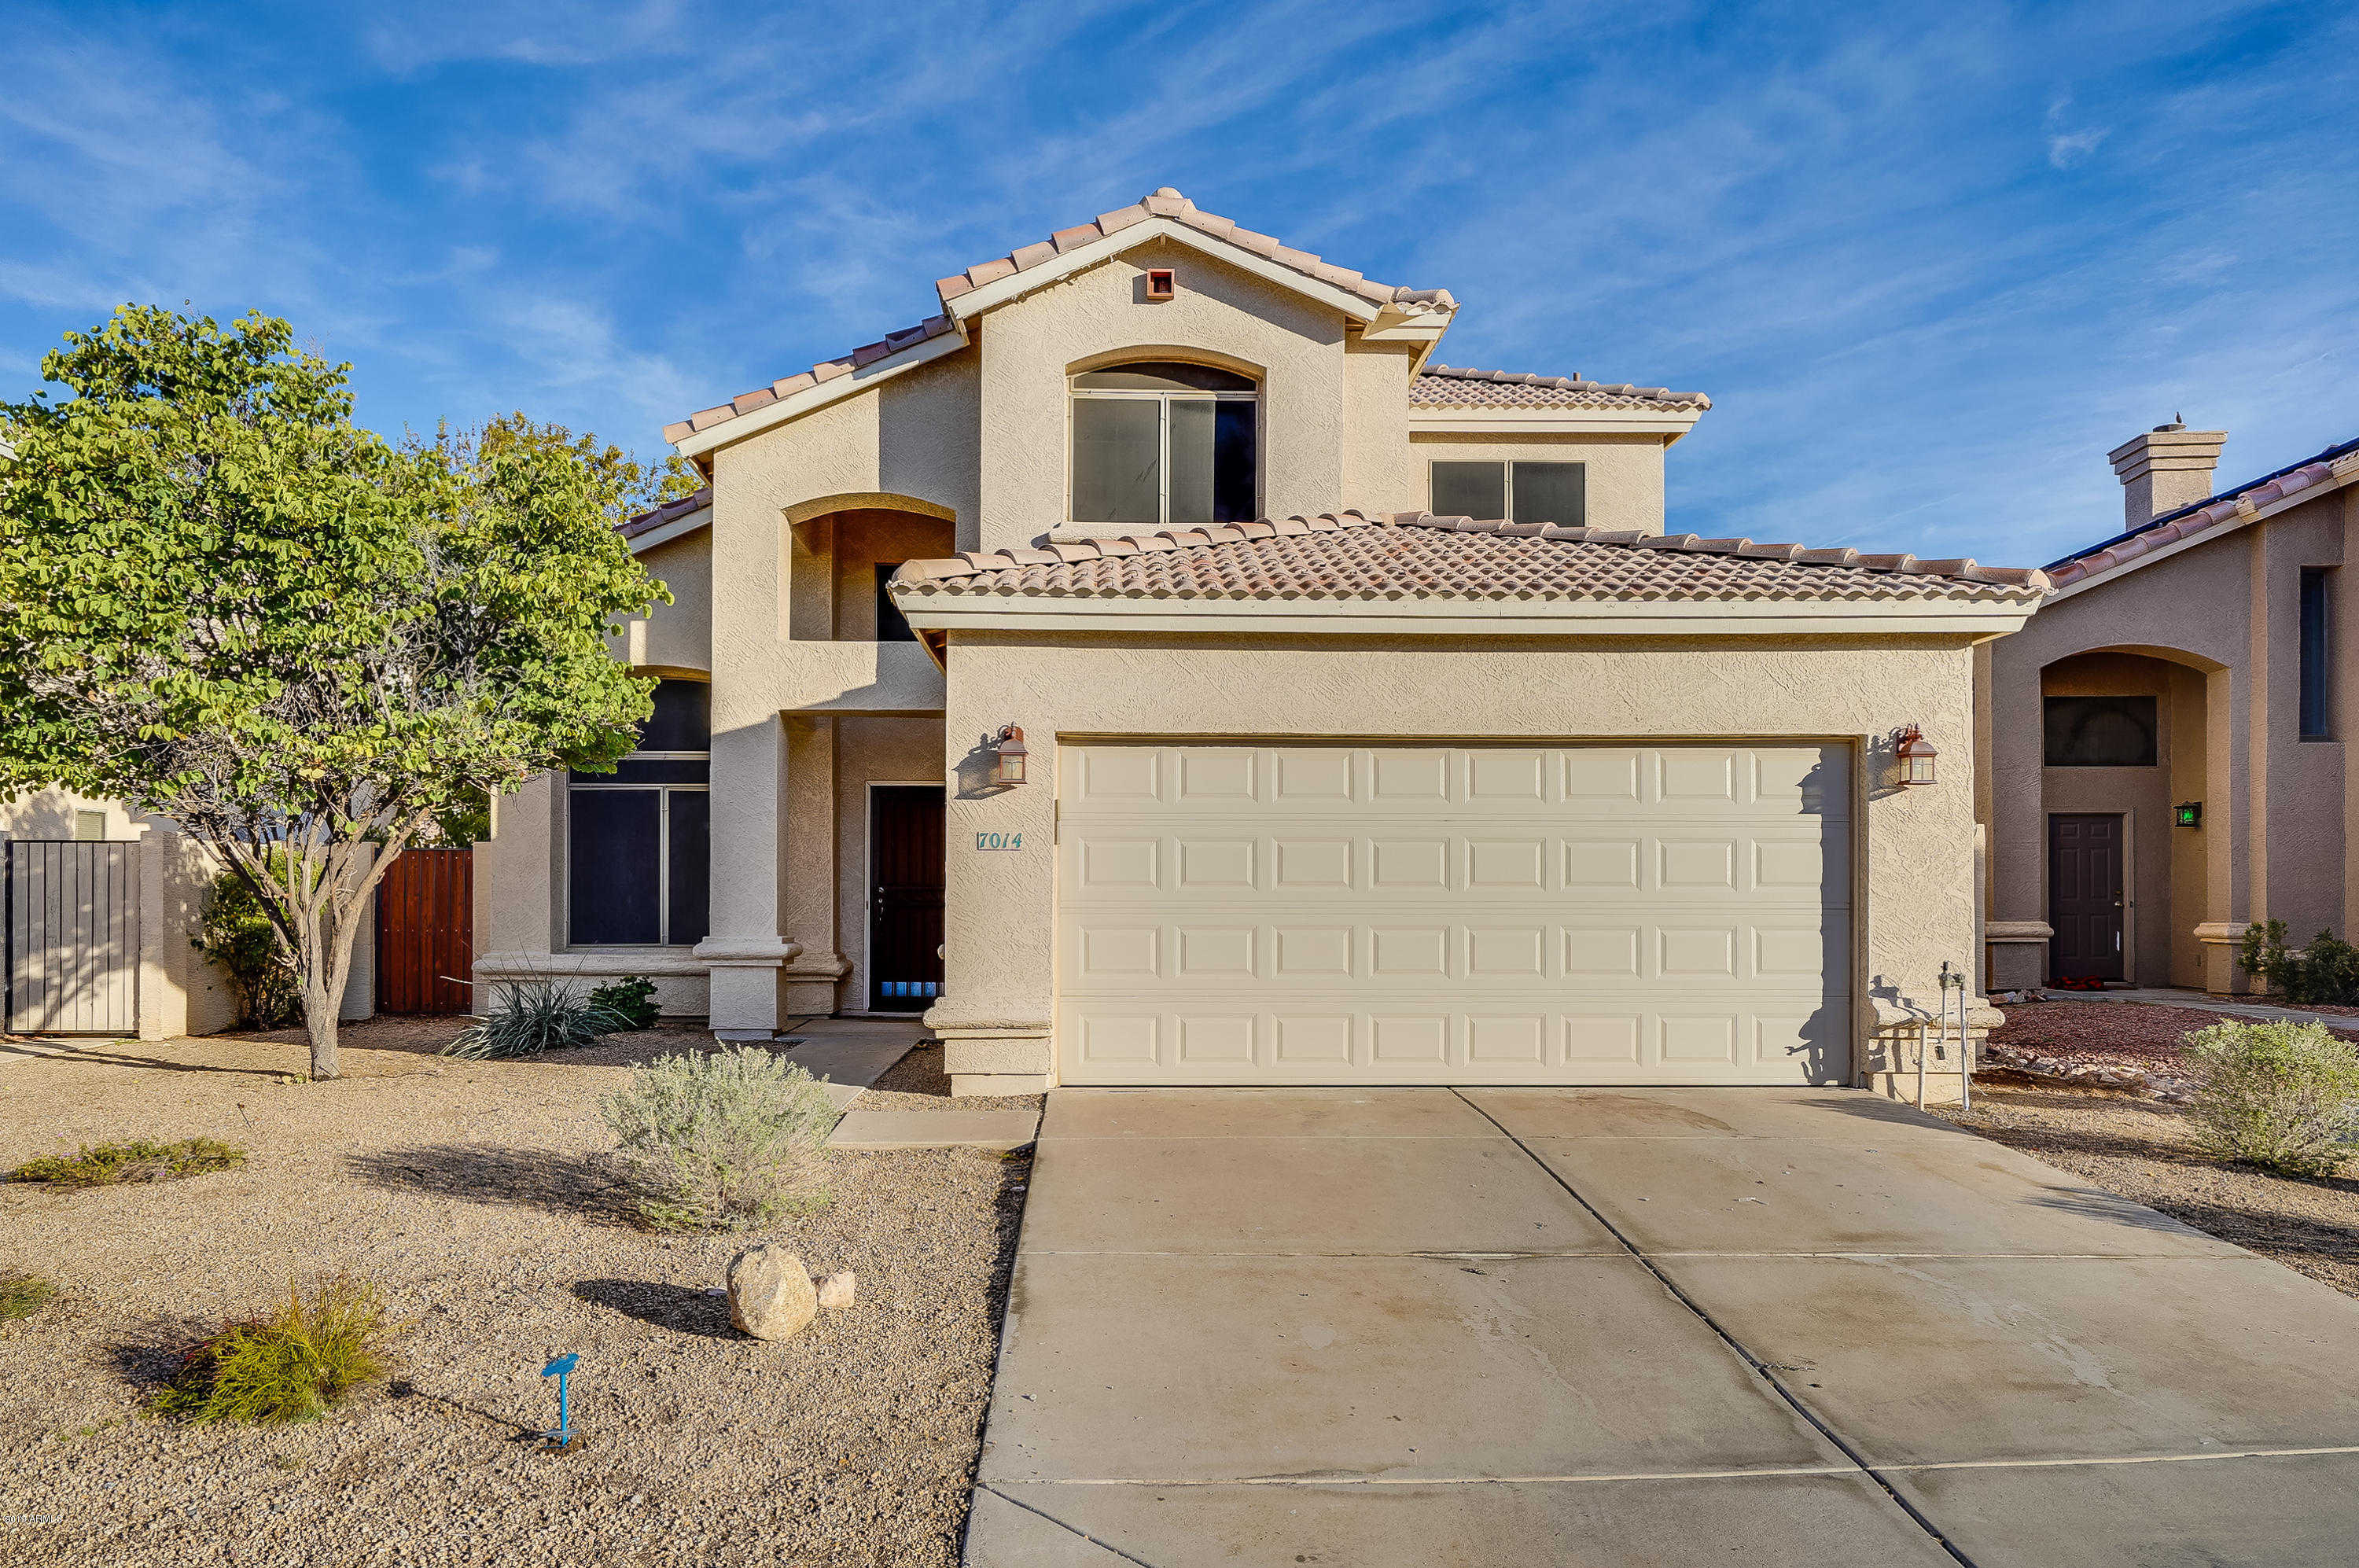 $313,000 - 4Br/3Ba - Home for Sale in Flora Cove, Glendale